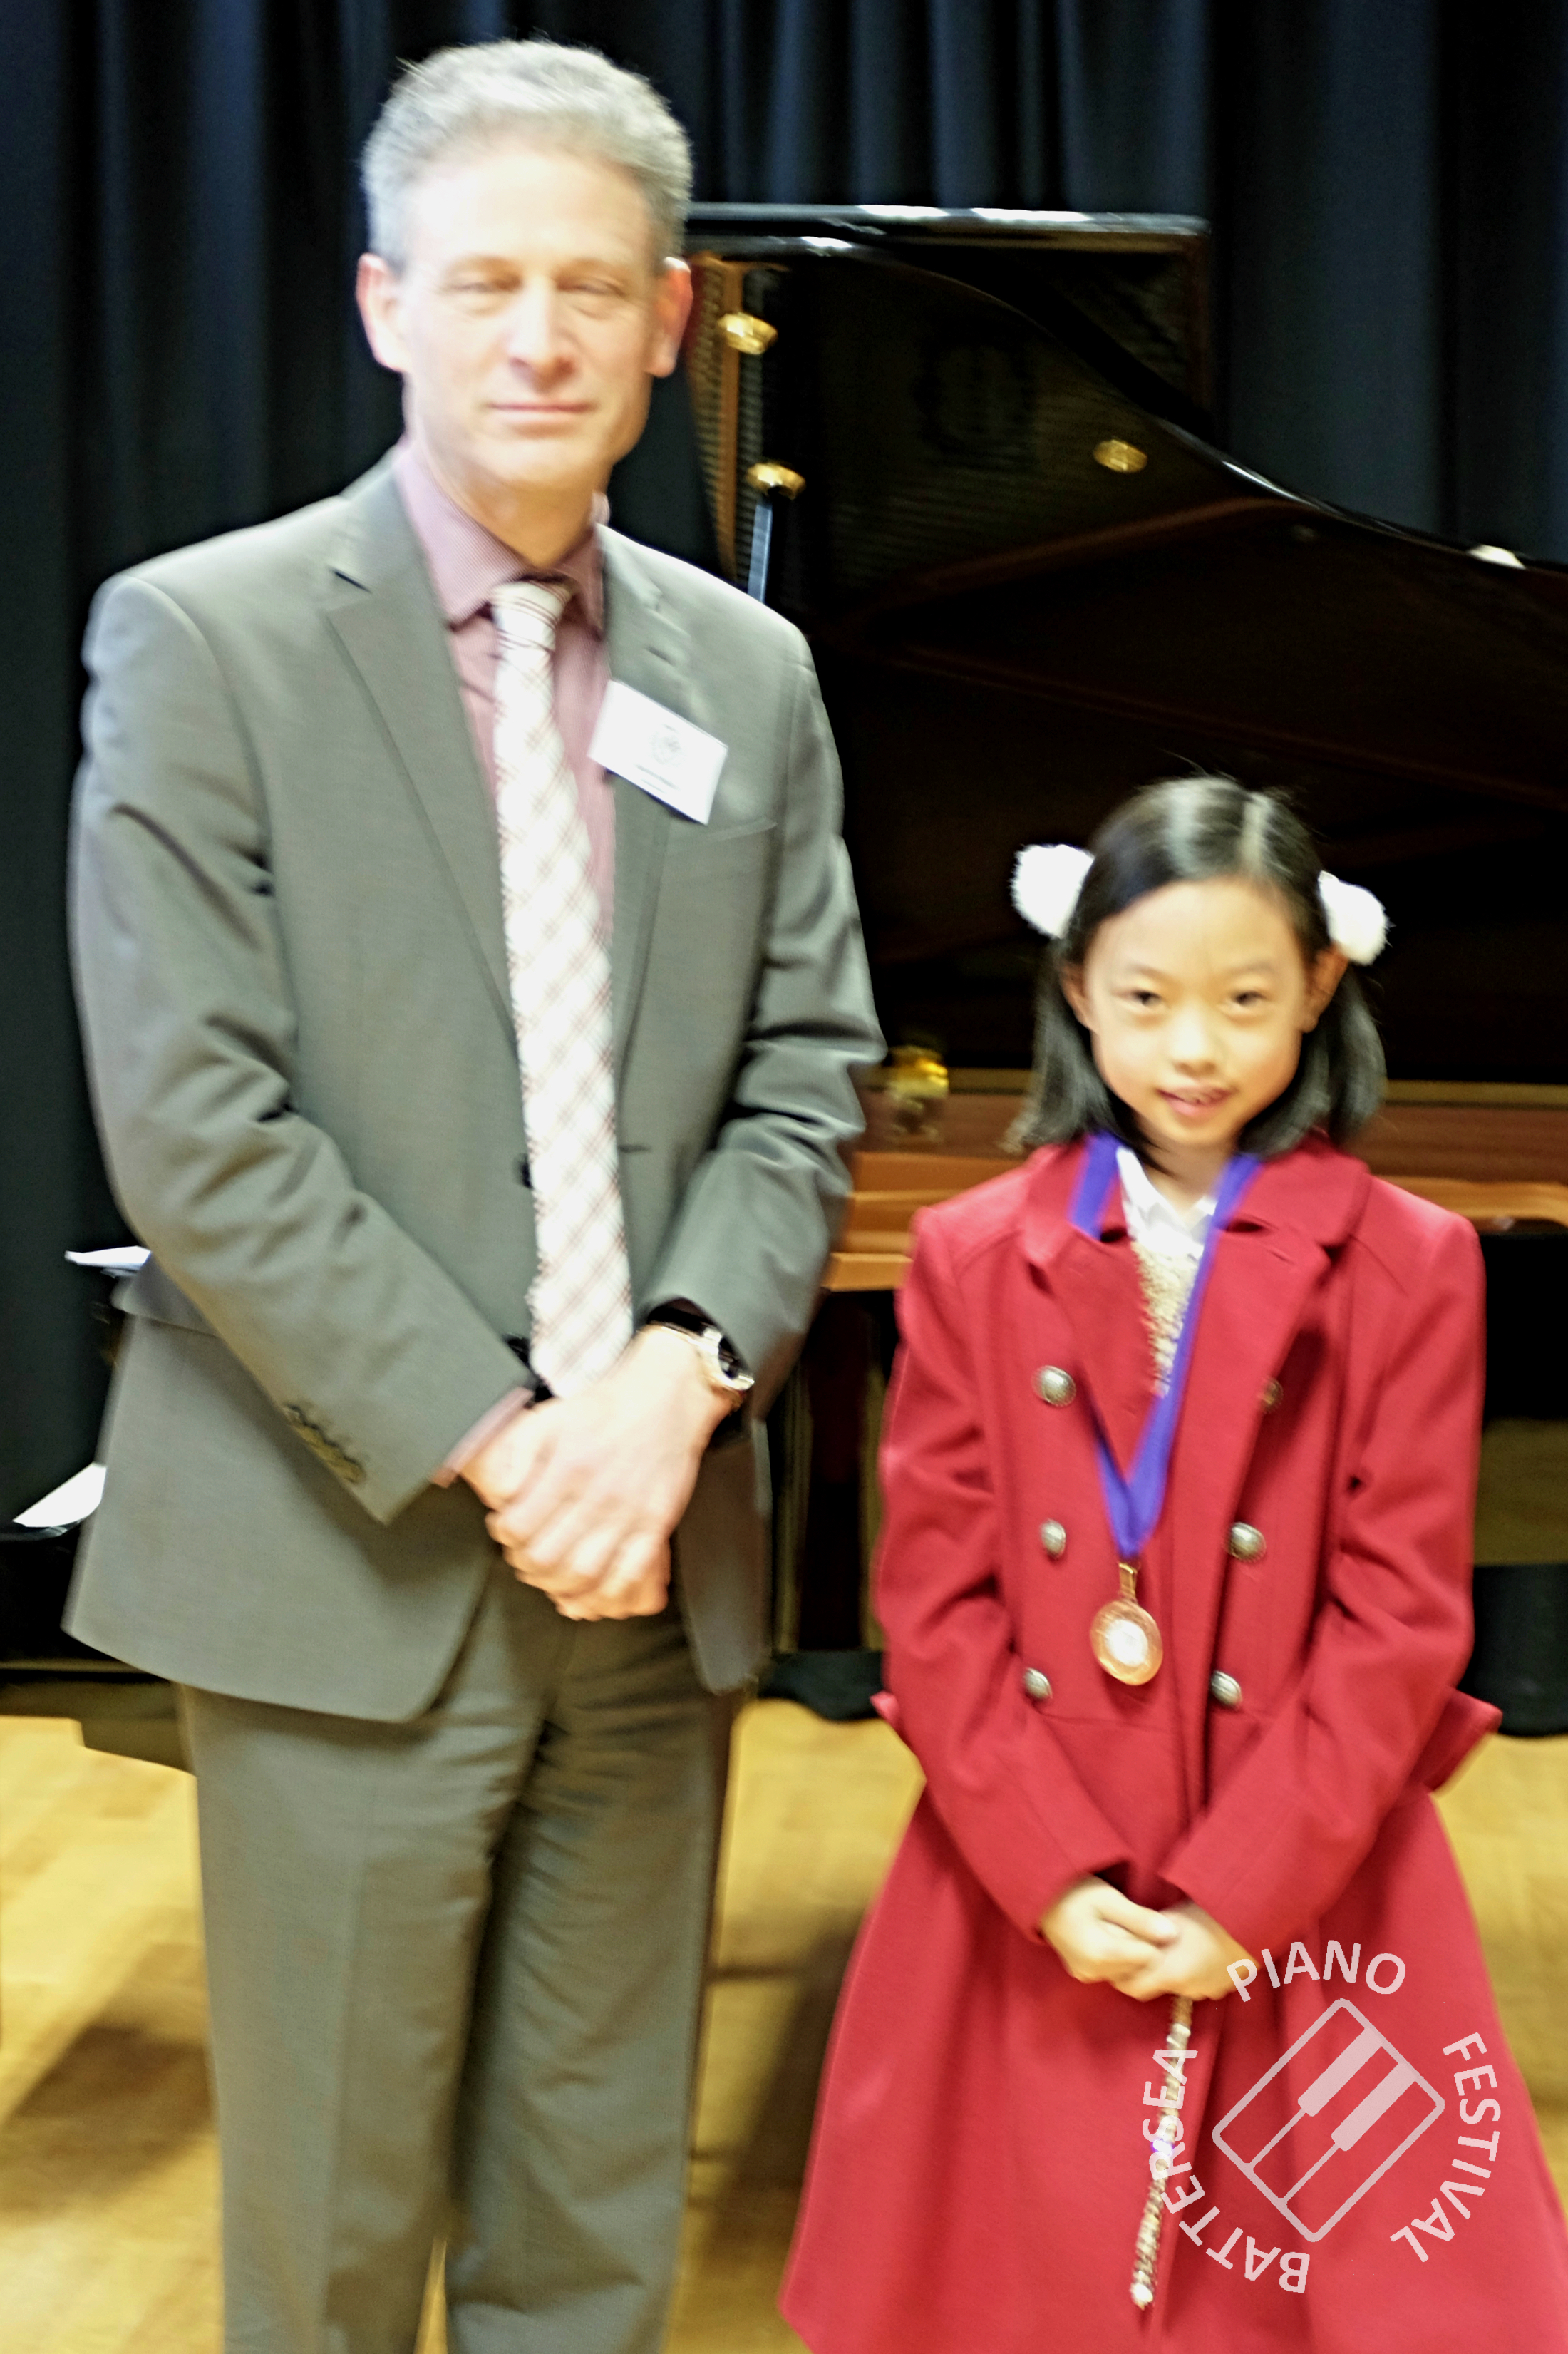 Battersea Piano Festival